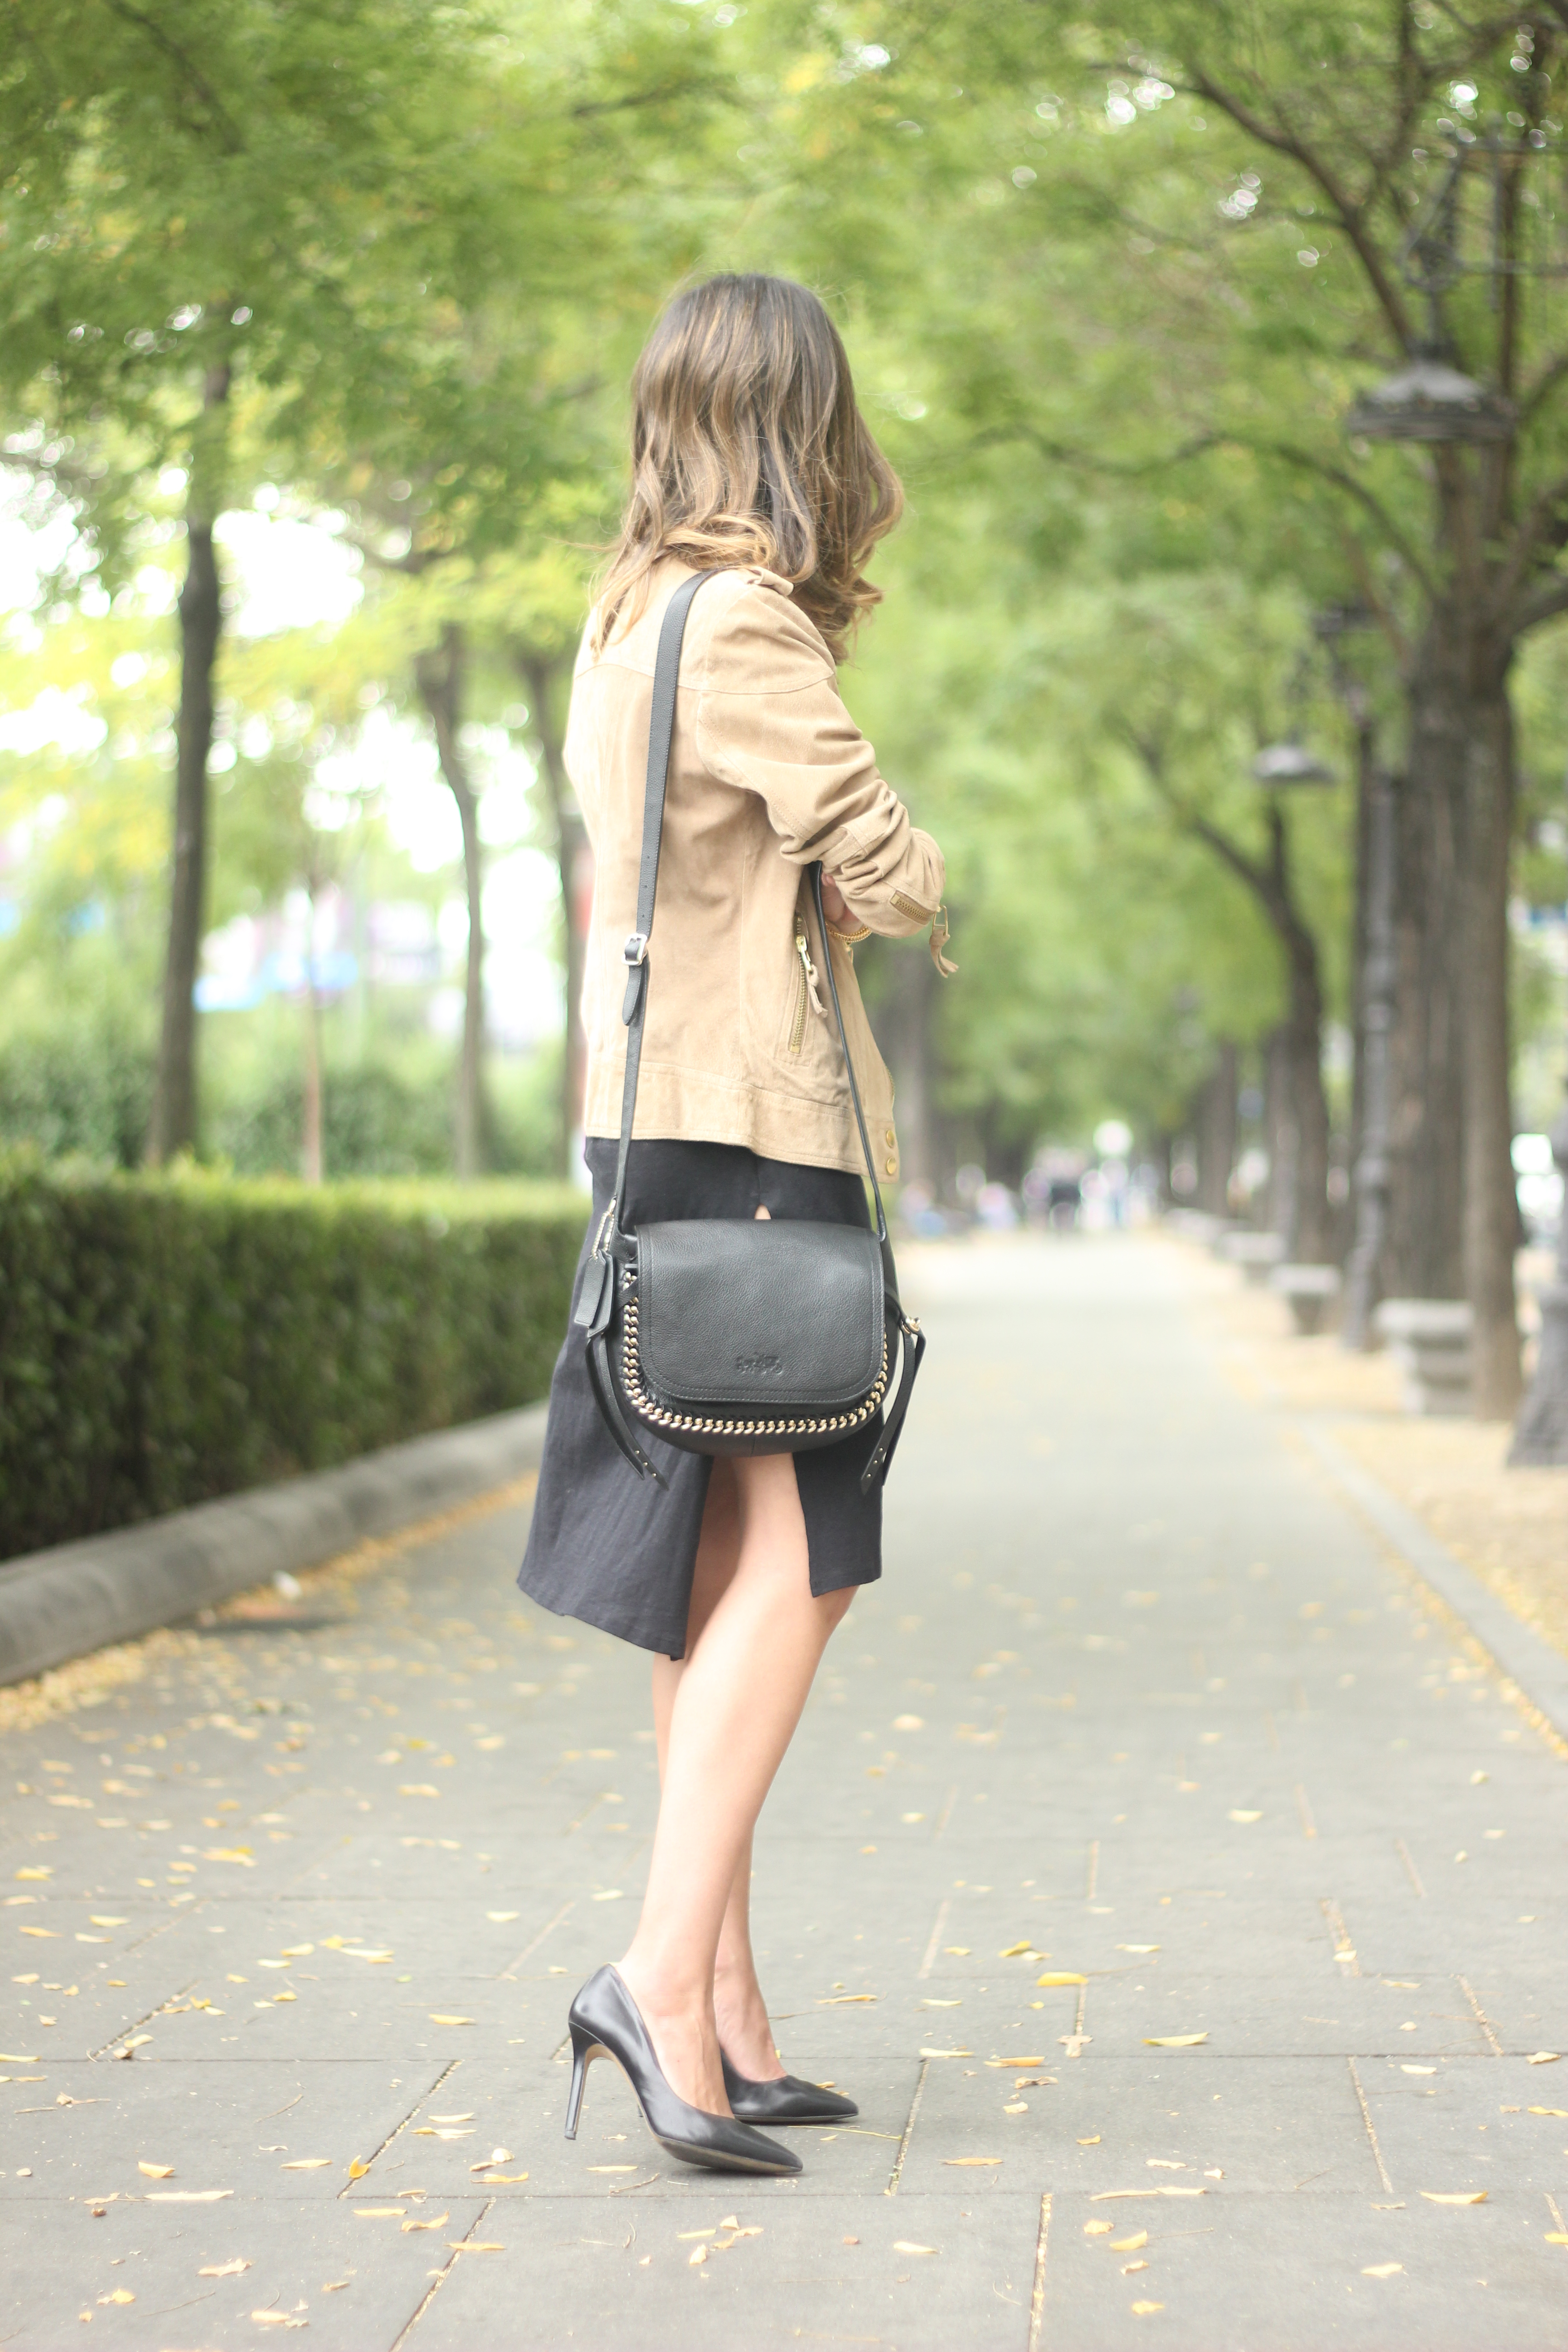 Suede Jacket Black Dress Coach Bag style fall outfit autumn01